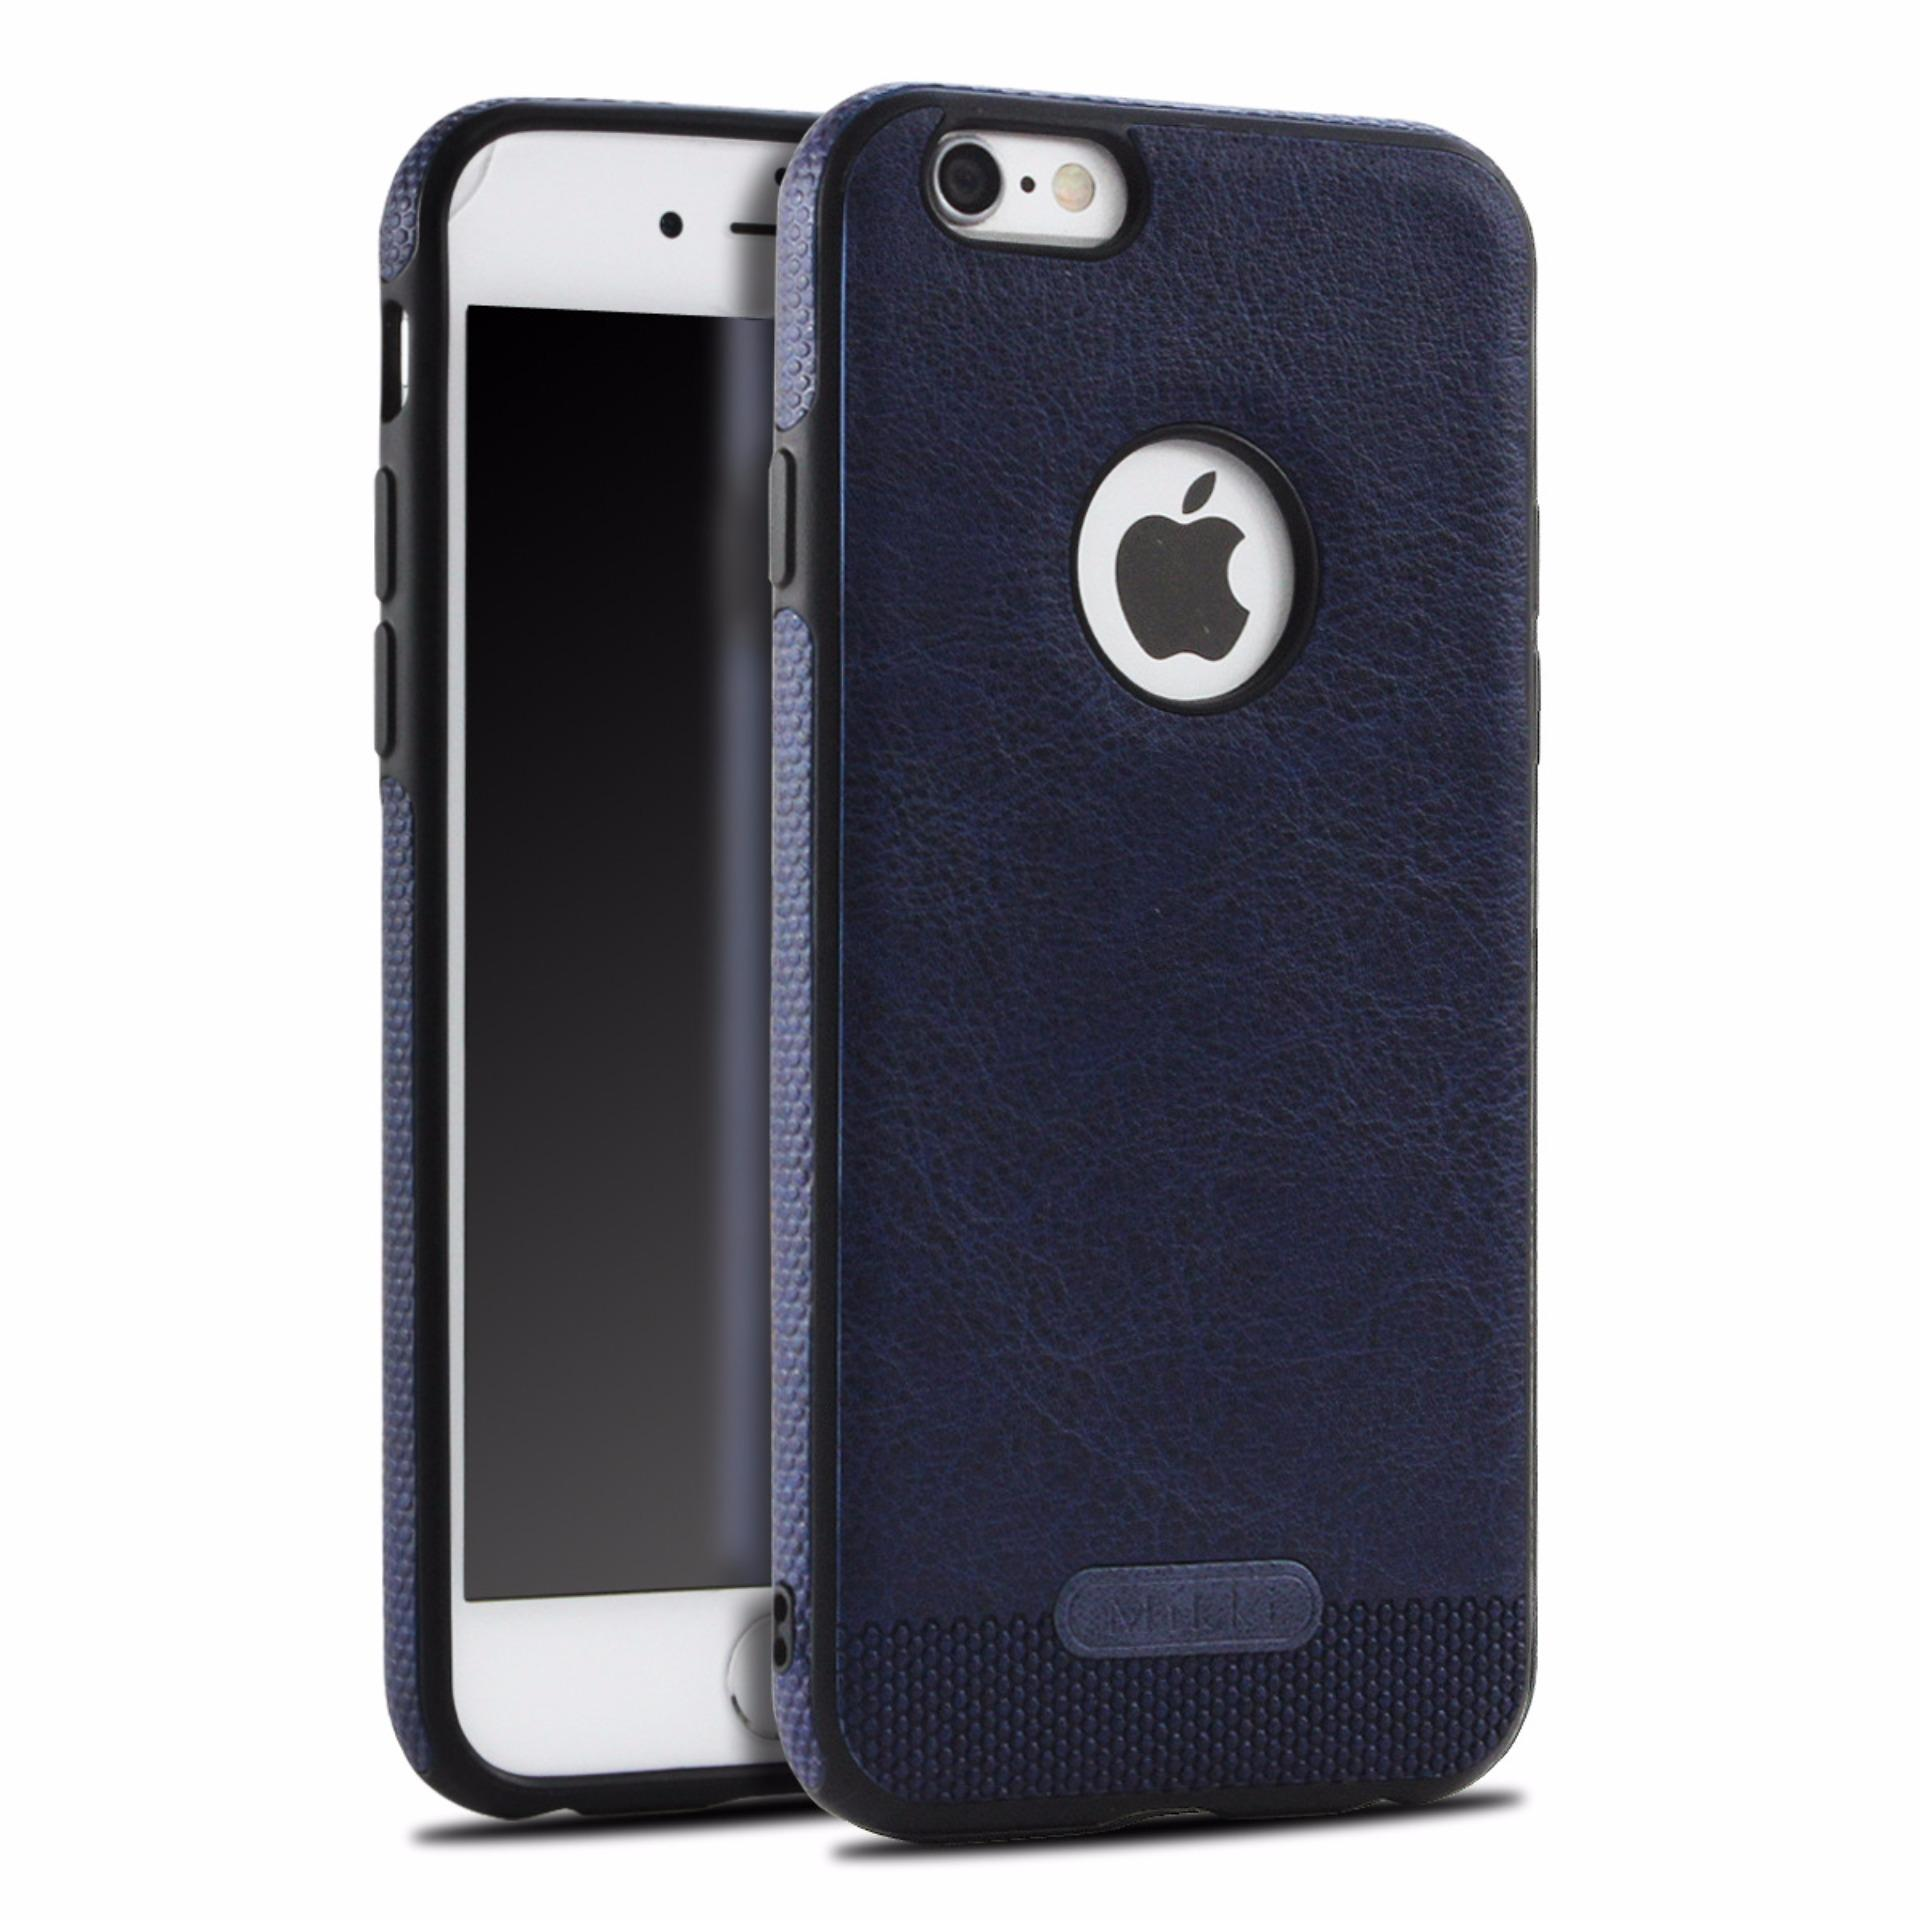 Harga Casing Case Iphone 6 Plus 6S Plus Leather Kulit Termahal